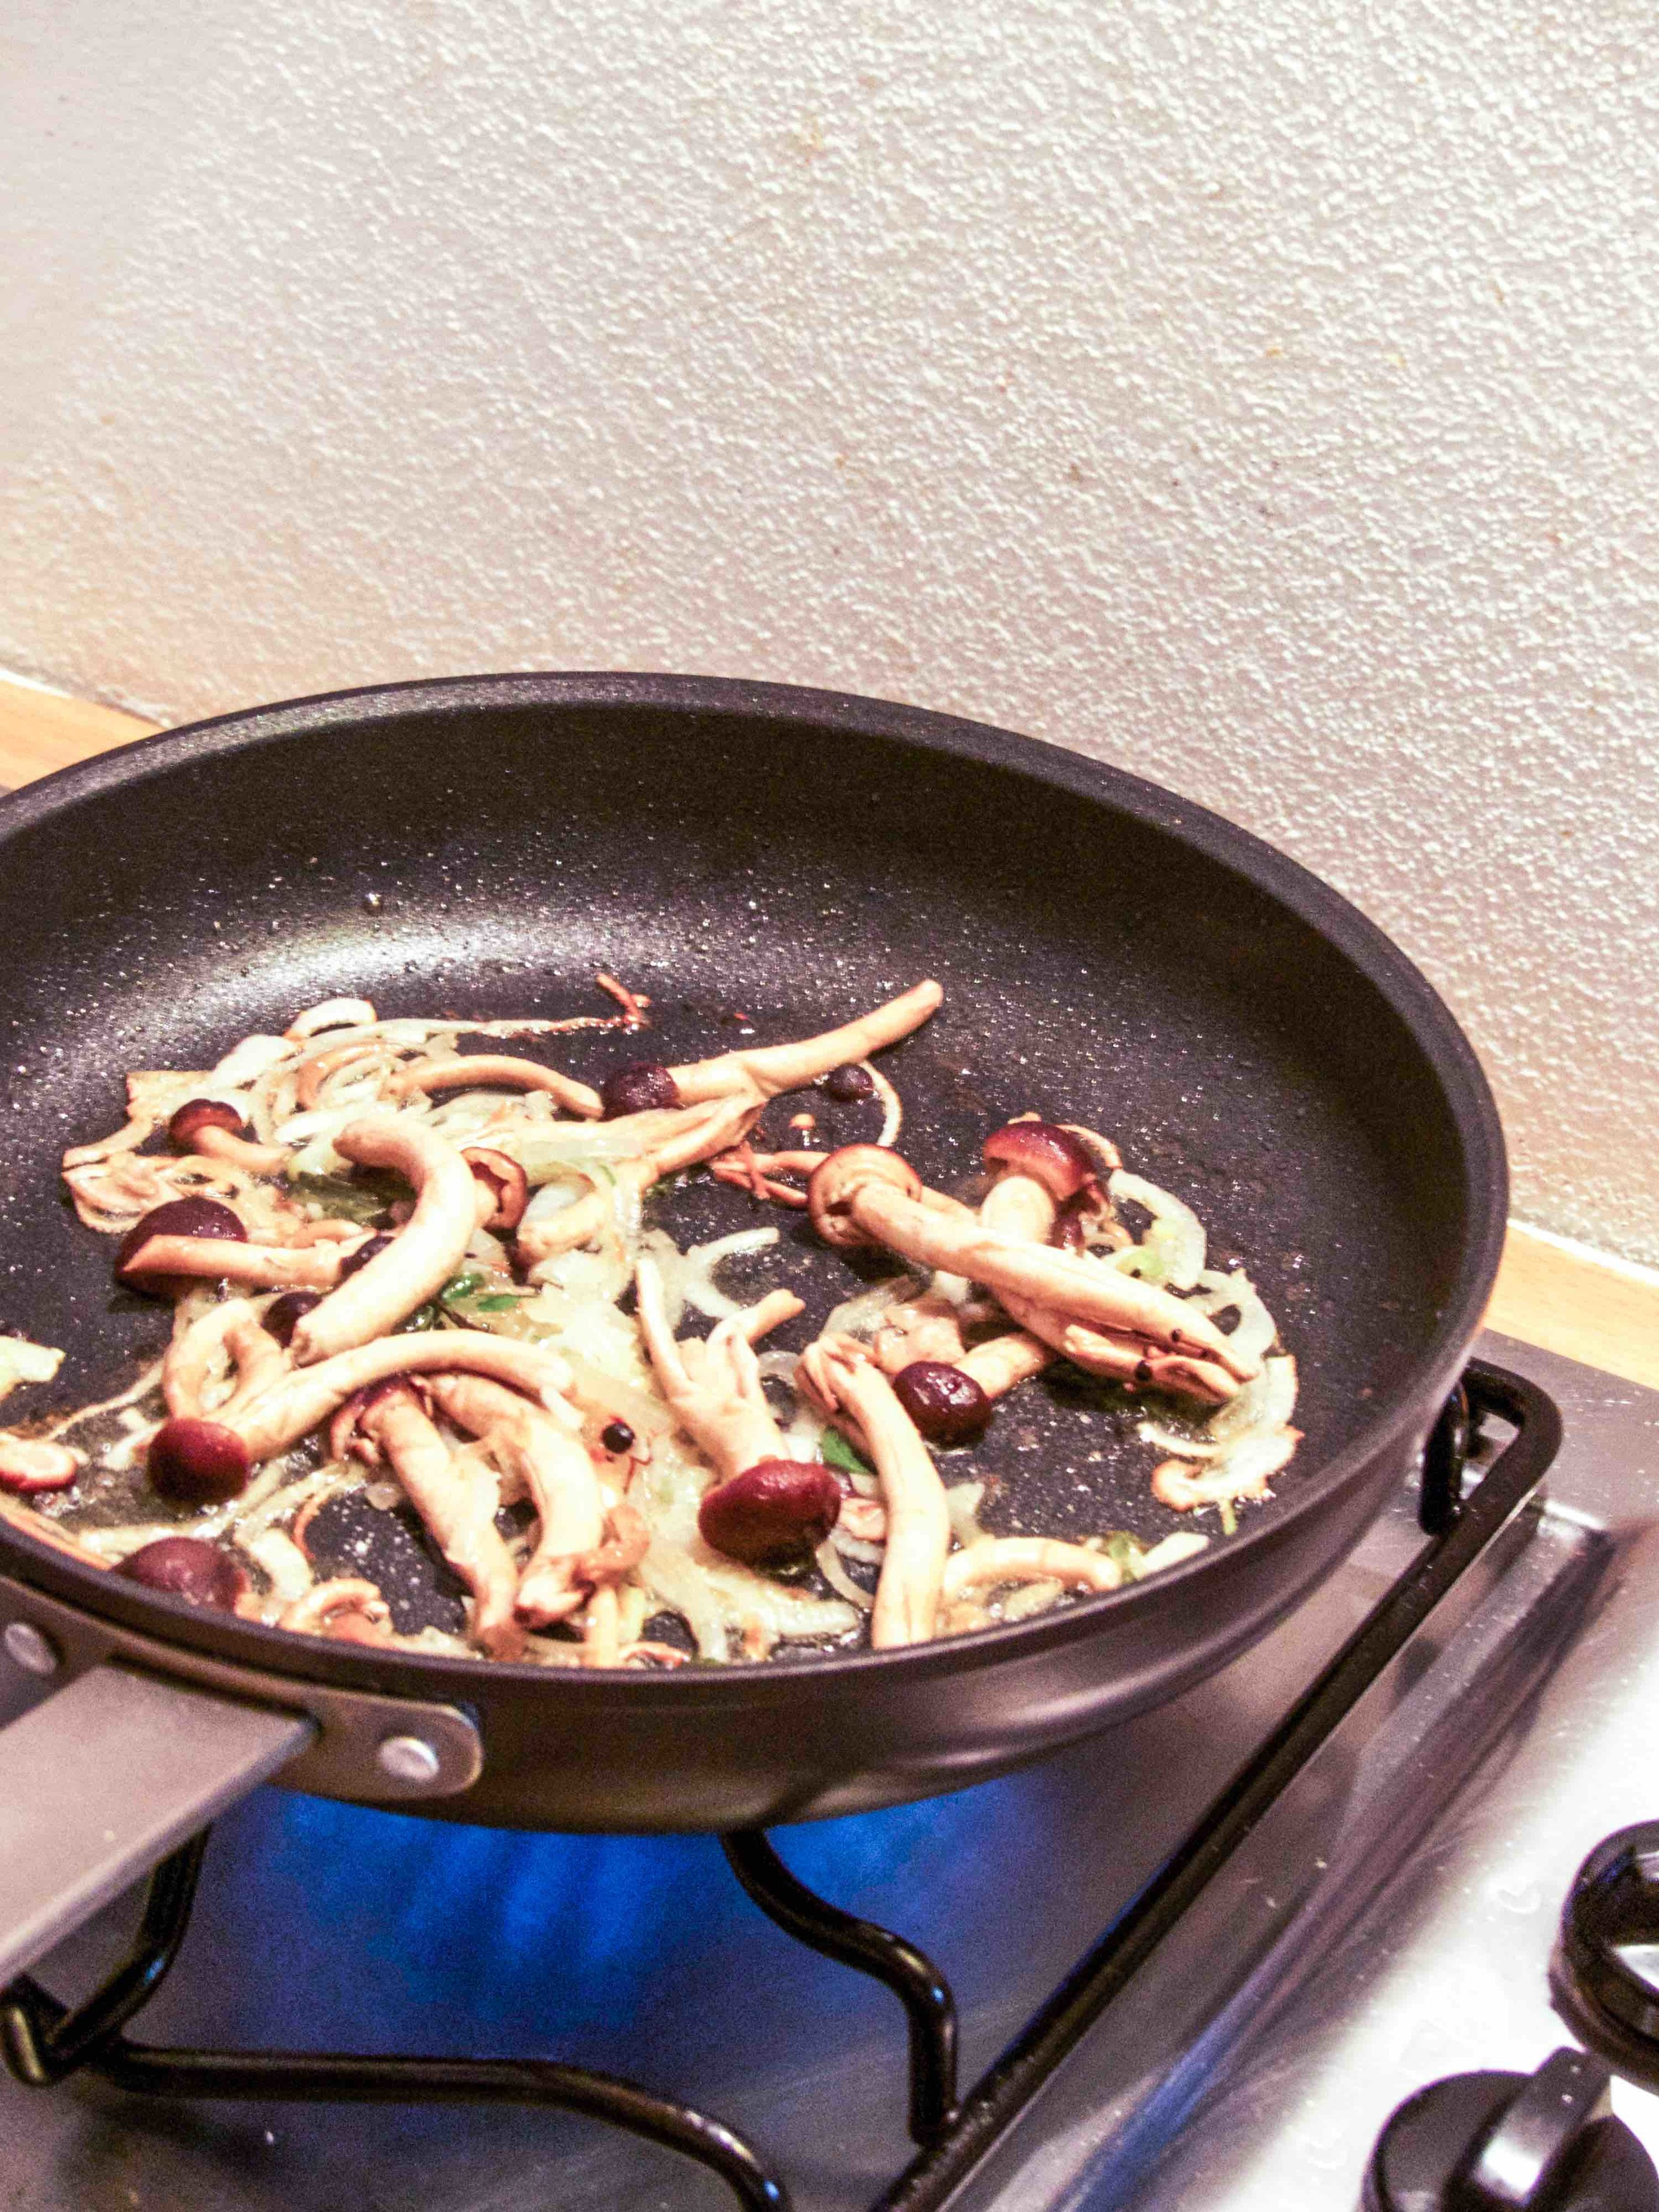 Preheat a skillet with a drizzle of olive oil on medium heat, cook onion for 3-4 minutes until they turn translucent.  Add mushrooms and a splash of sake.  Season.  After the alcohol has evaporated, put a lid on and cook for another 3-5 minutes.